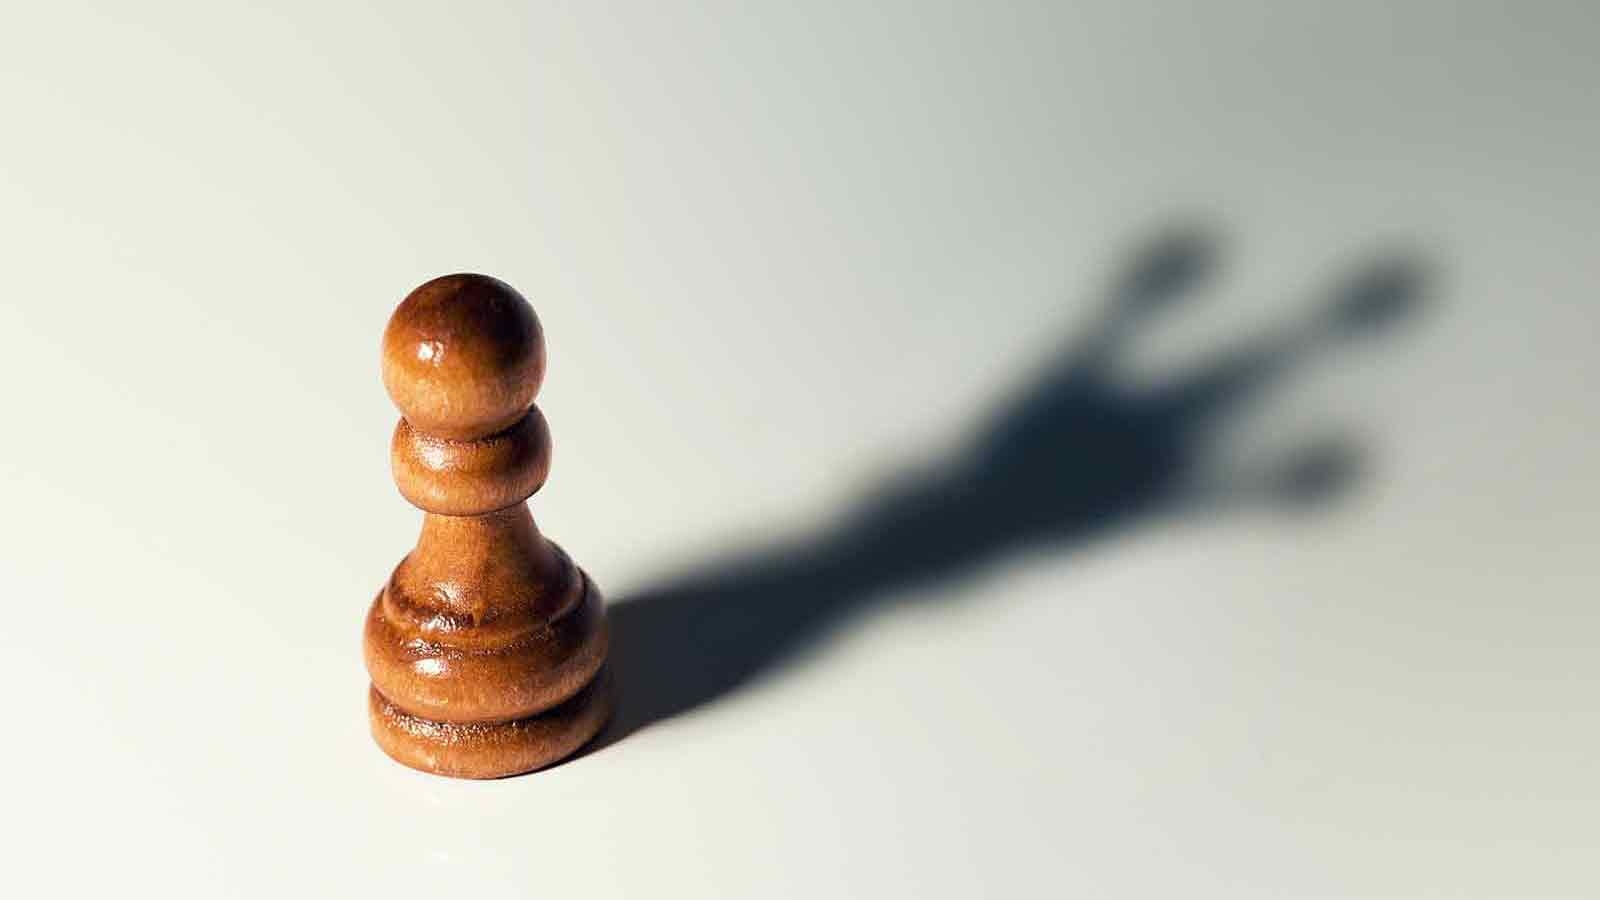 chess pawn piece but its shadow looks like a king piece